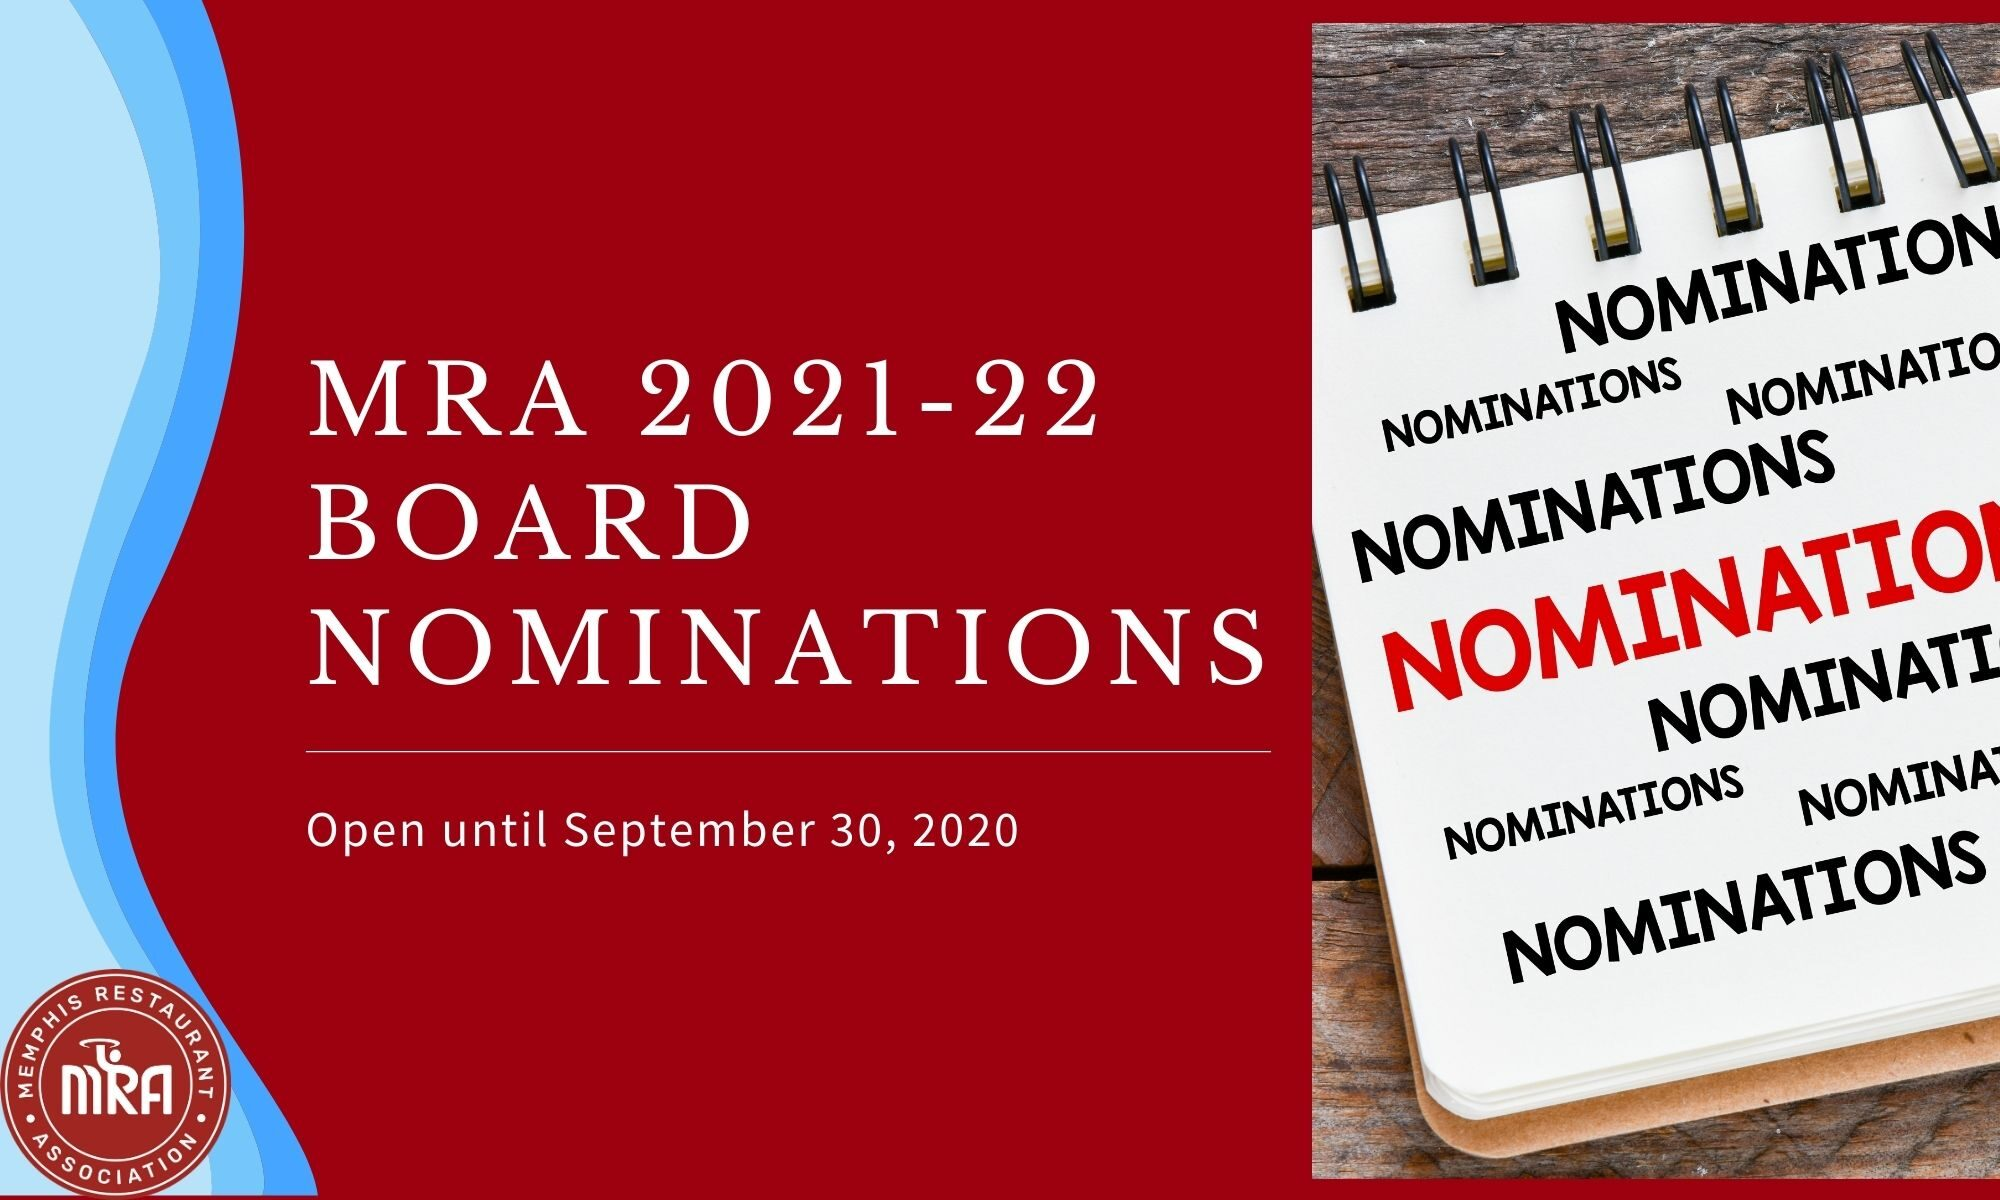 MRA Nominations Image